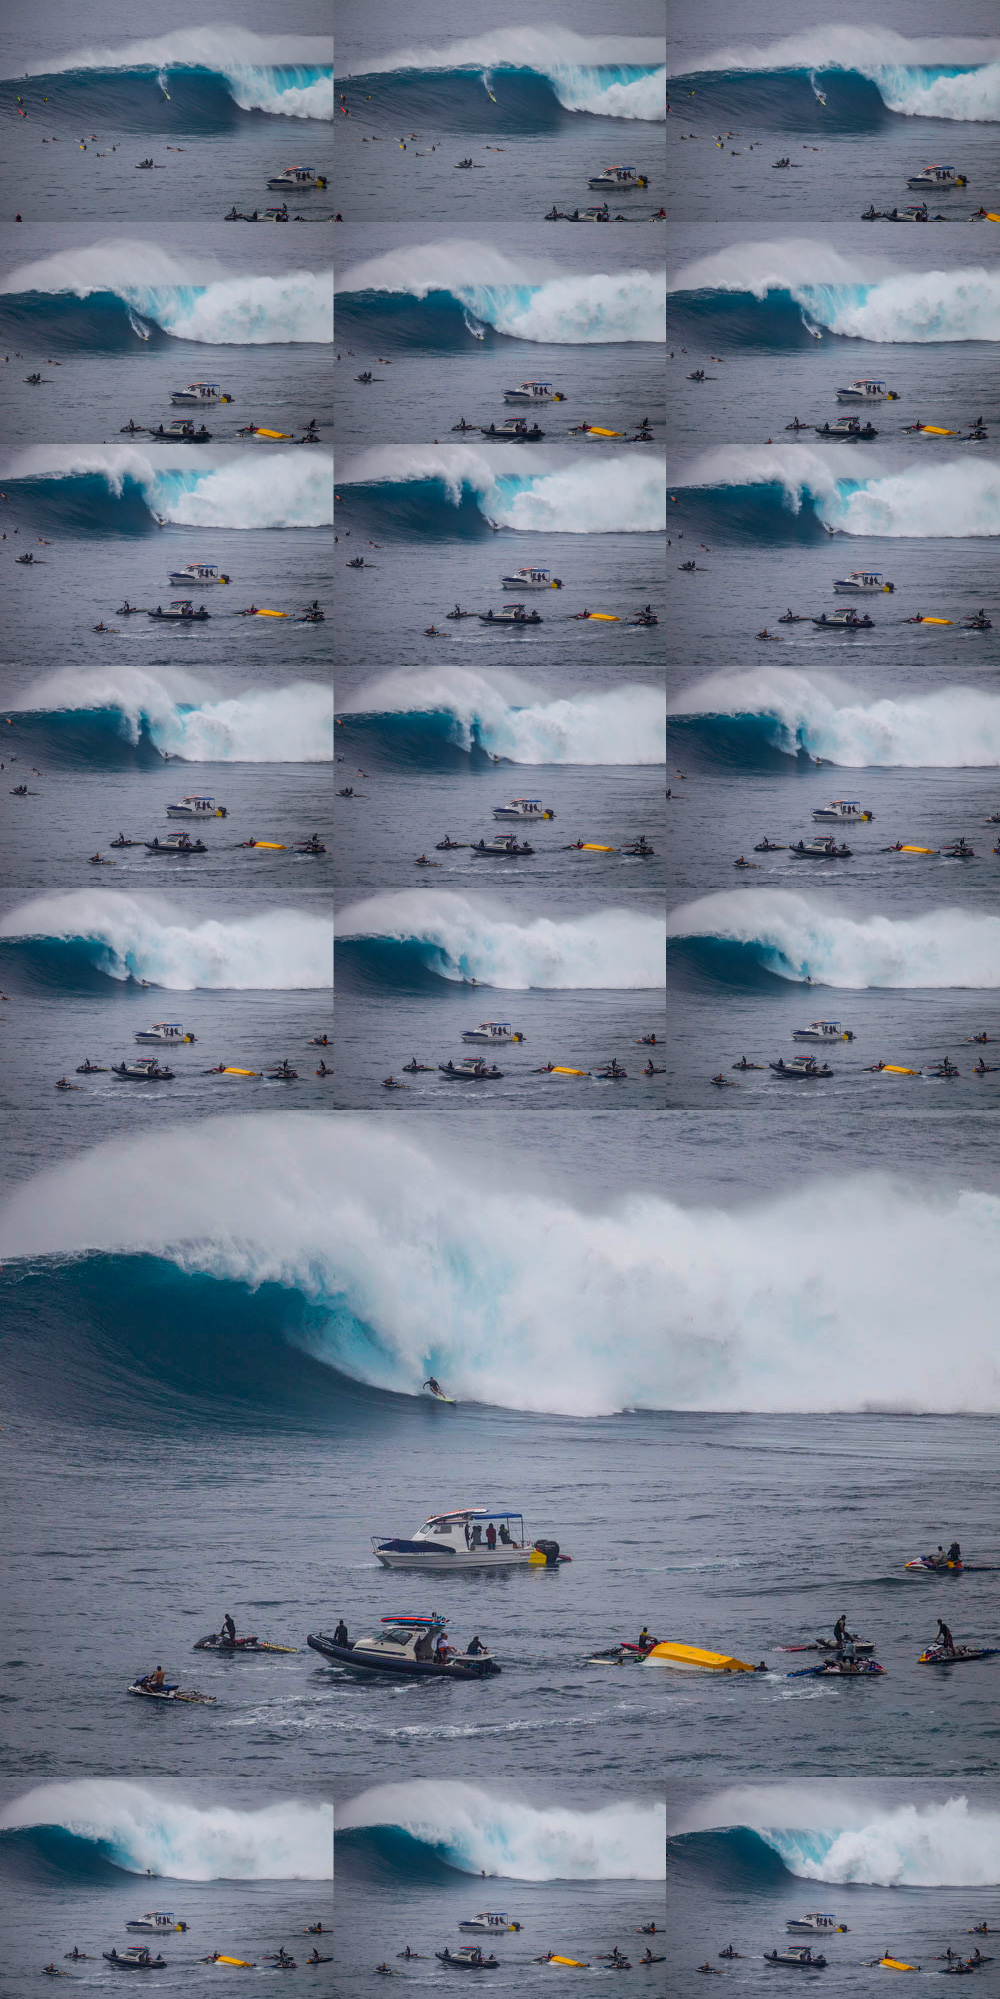 Dege O'Connell XXL wipeout